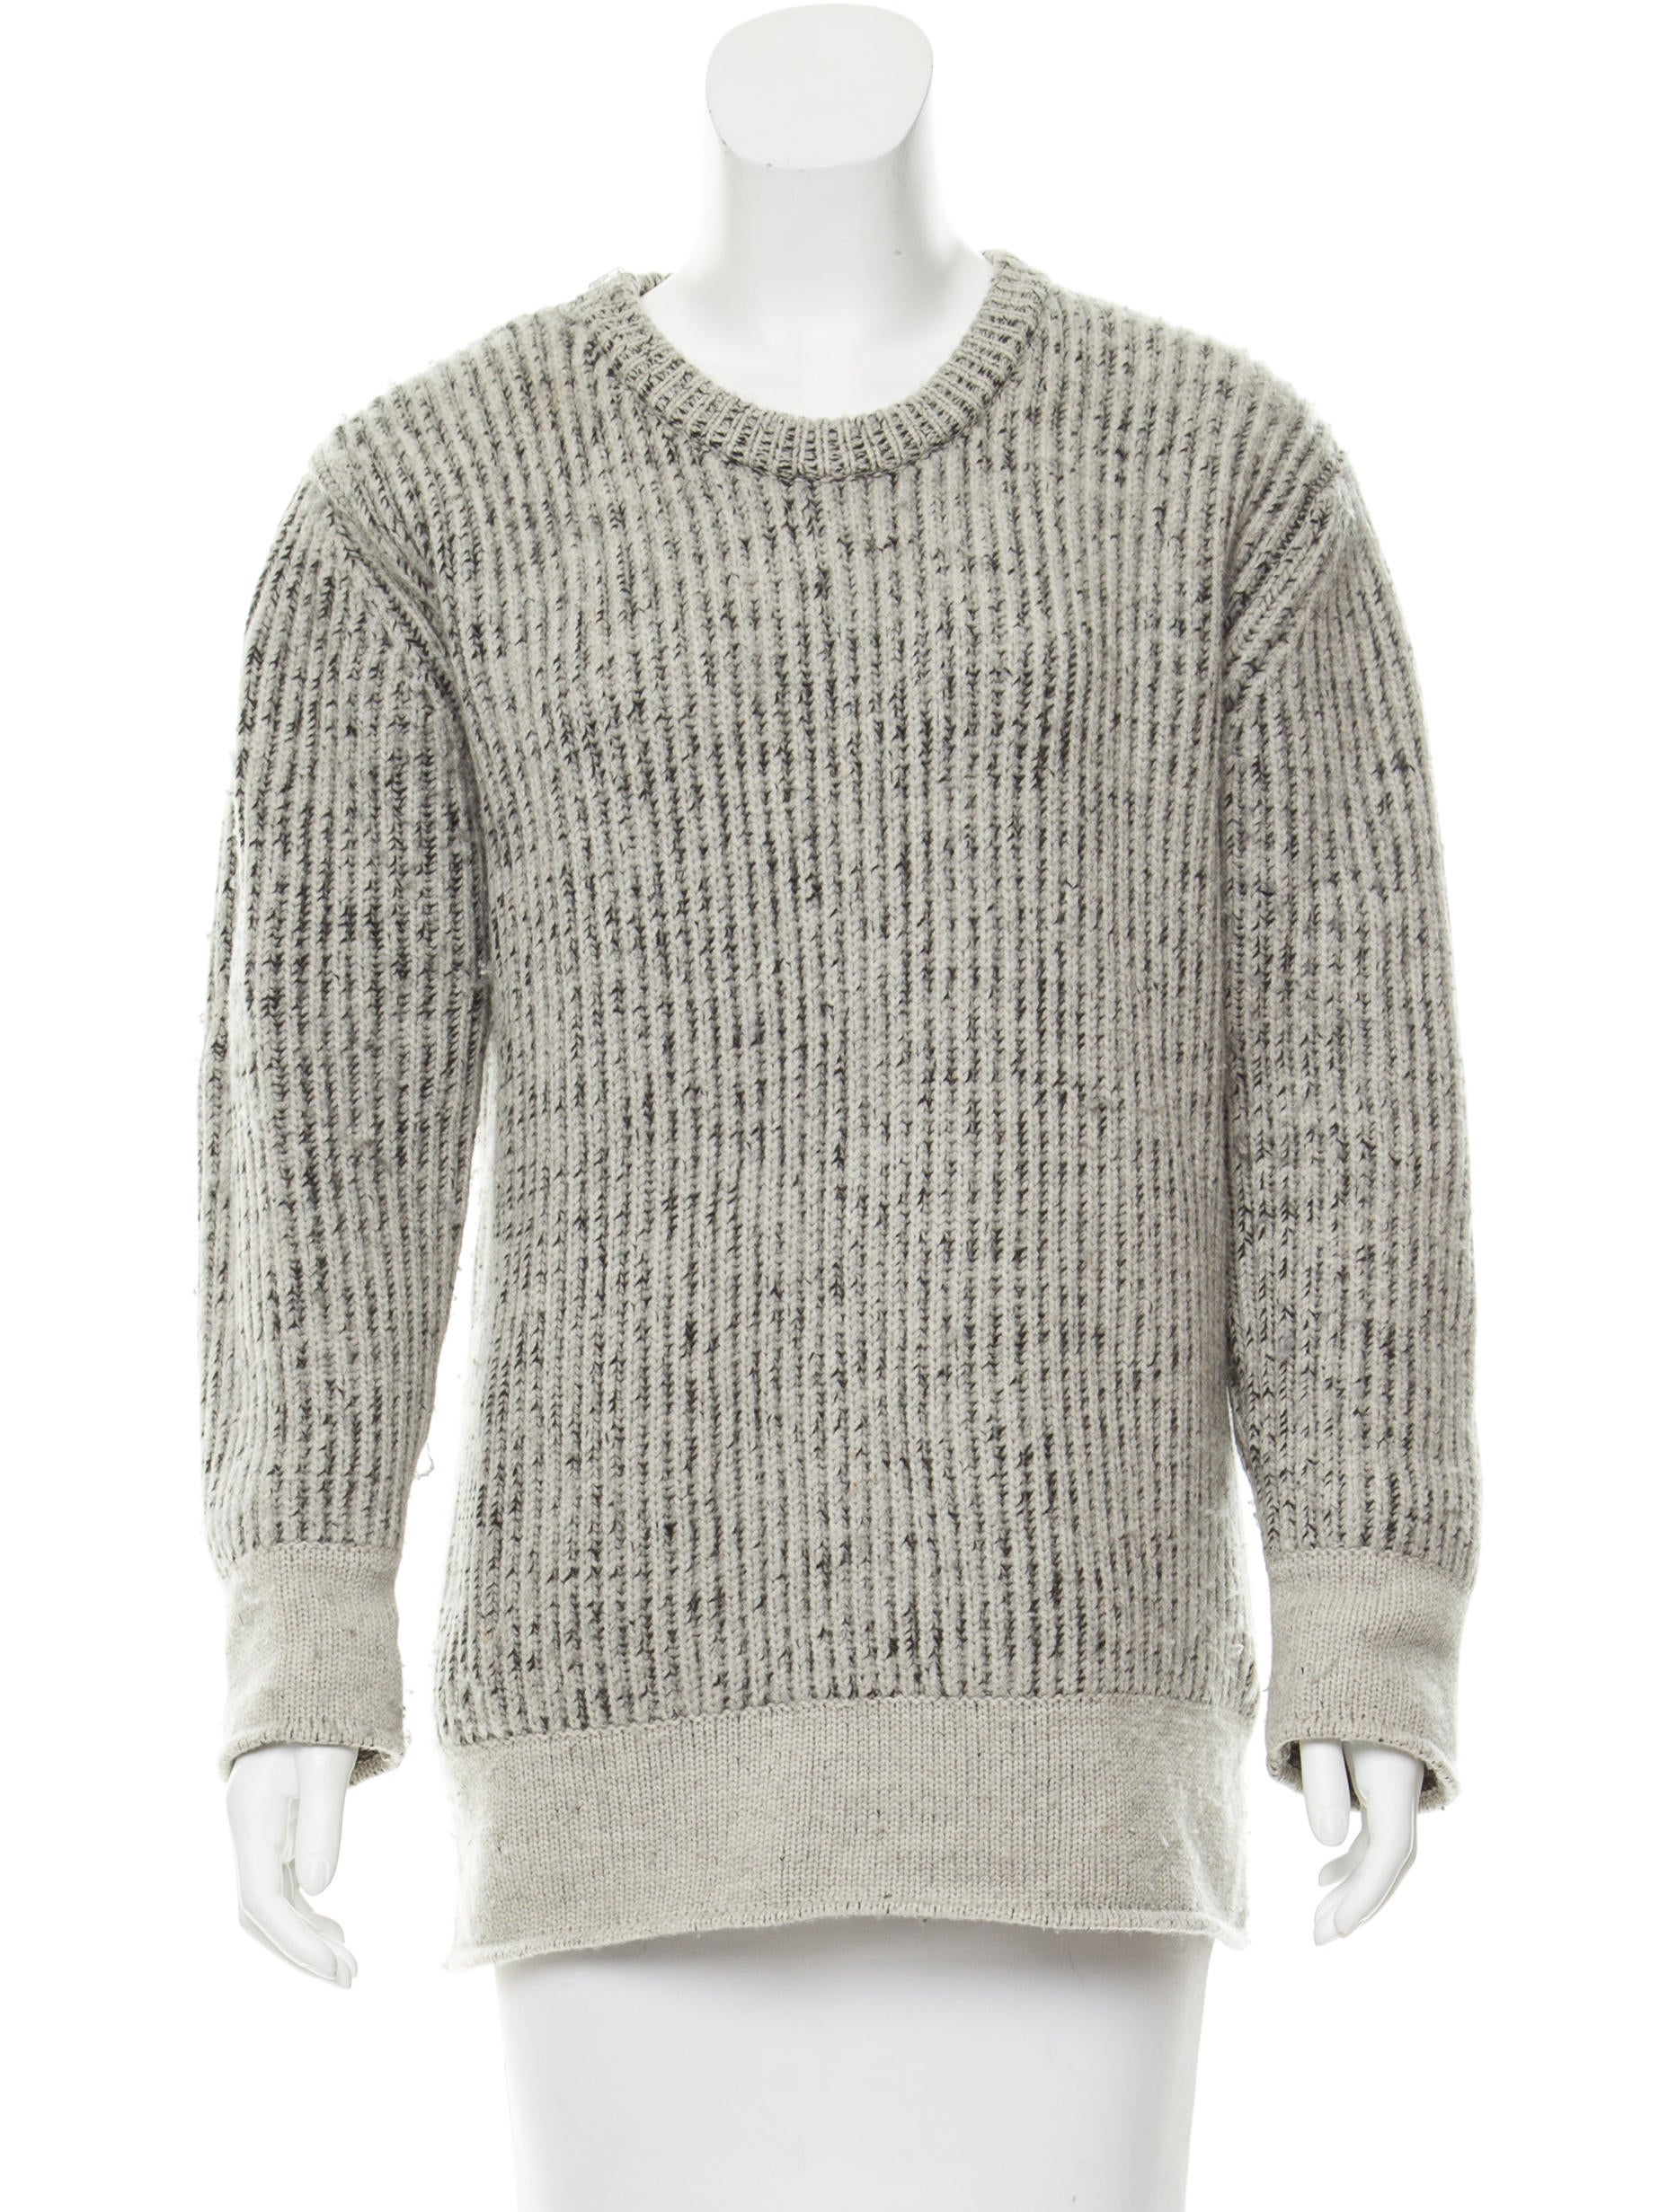 Welcome to Novica's Hand-Knit Sweaters Collection. Add global flair to your wardrobe with a cardigan or pullover that has been handcrafted just for you by artisans worldwide. Explore Novica's hand-knit sweaters collection to see cotton and wool sweaters for her and him.